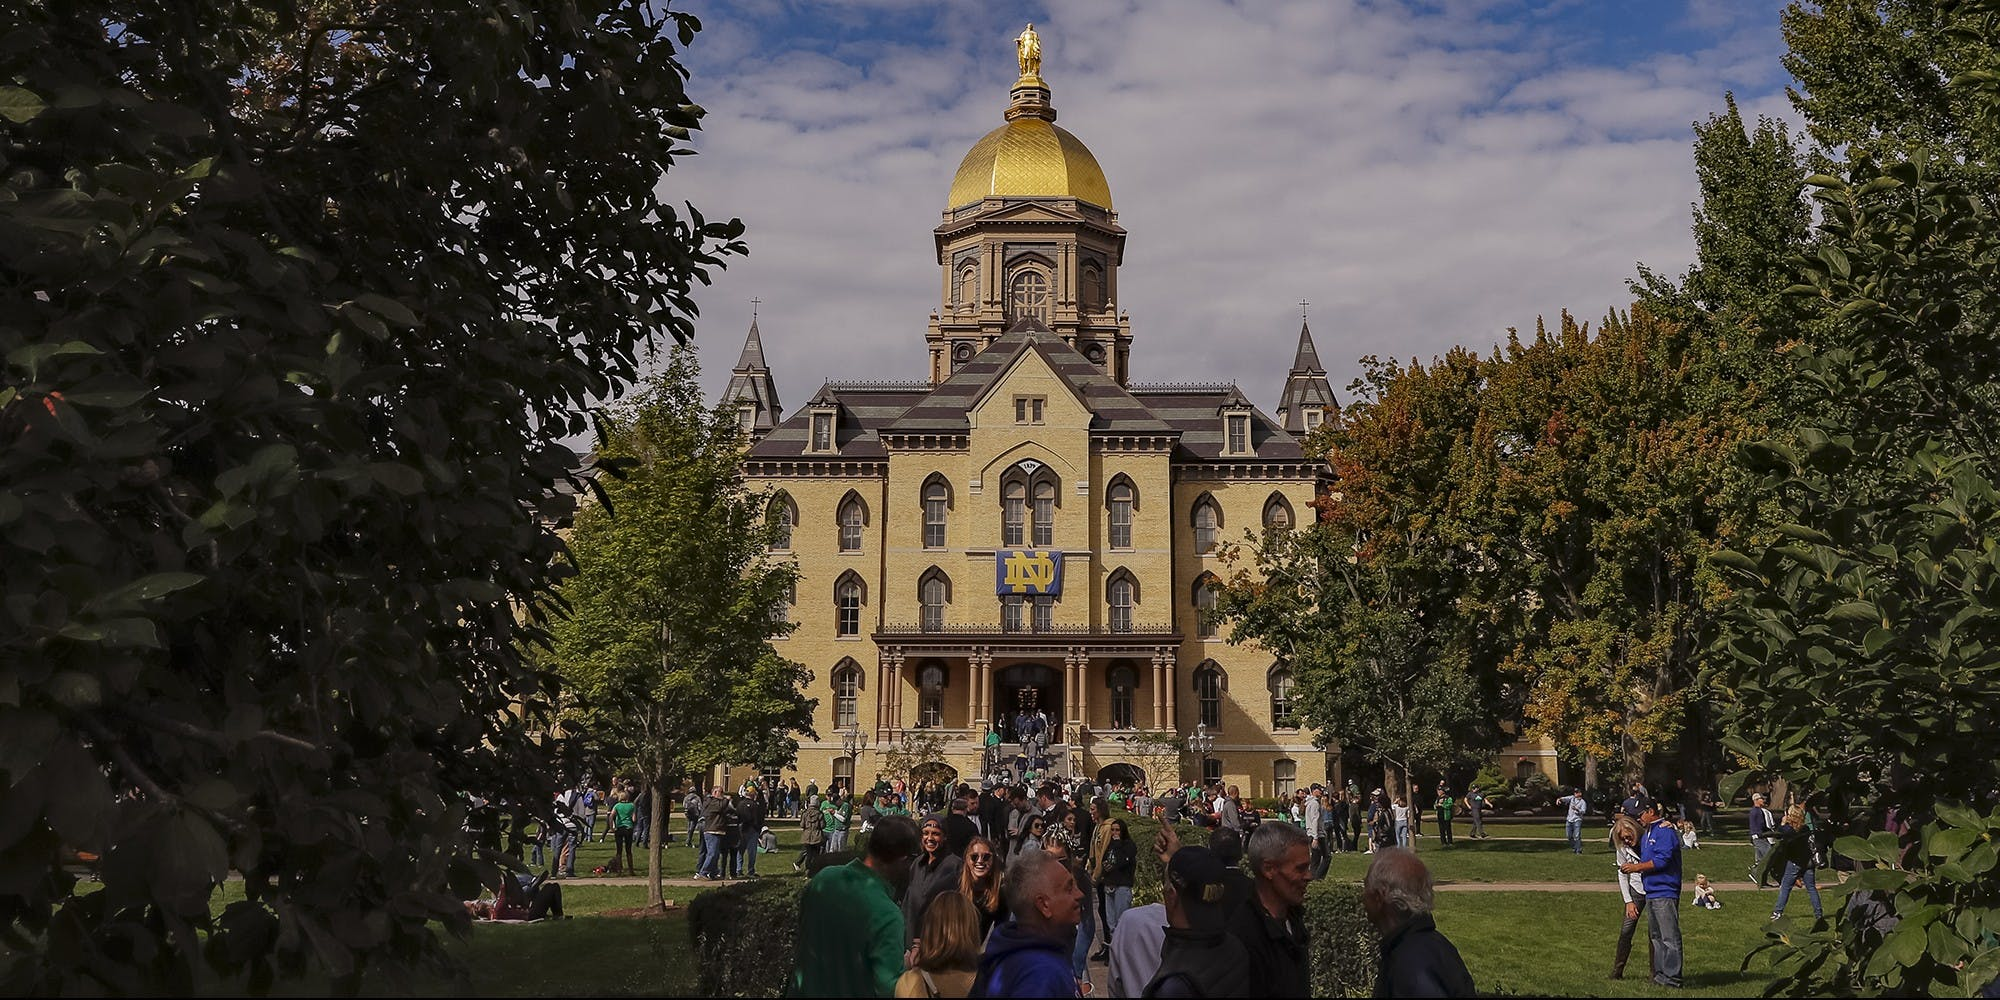 Notre Dame Struck a Secret Deal With the Trump Administration to Deny Birth Control Coverage. Now Students Are Fighting Back.